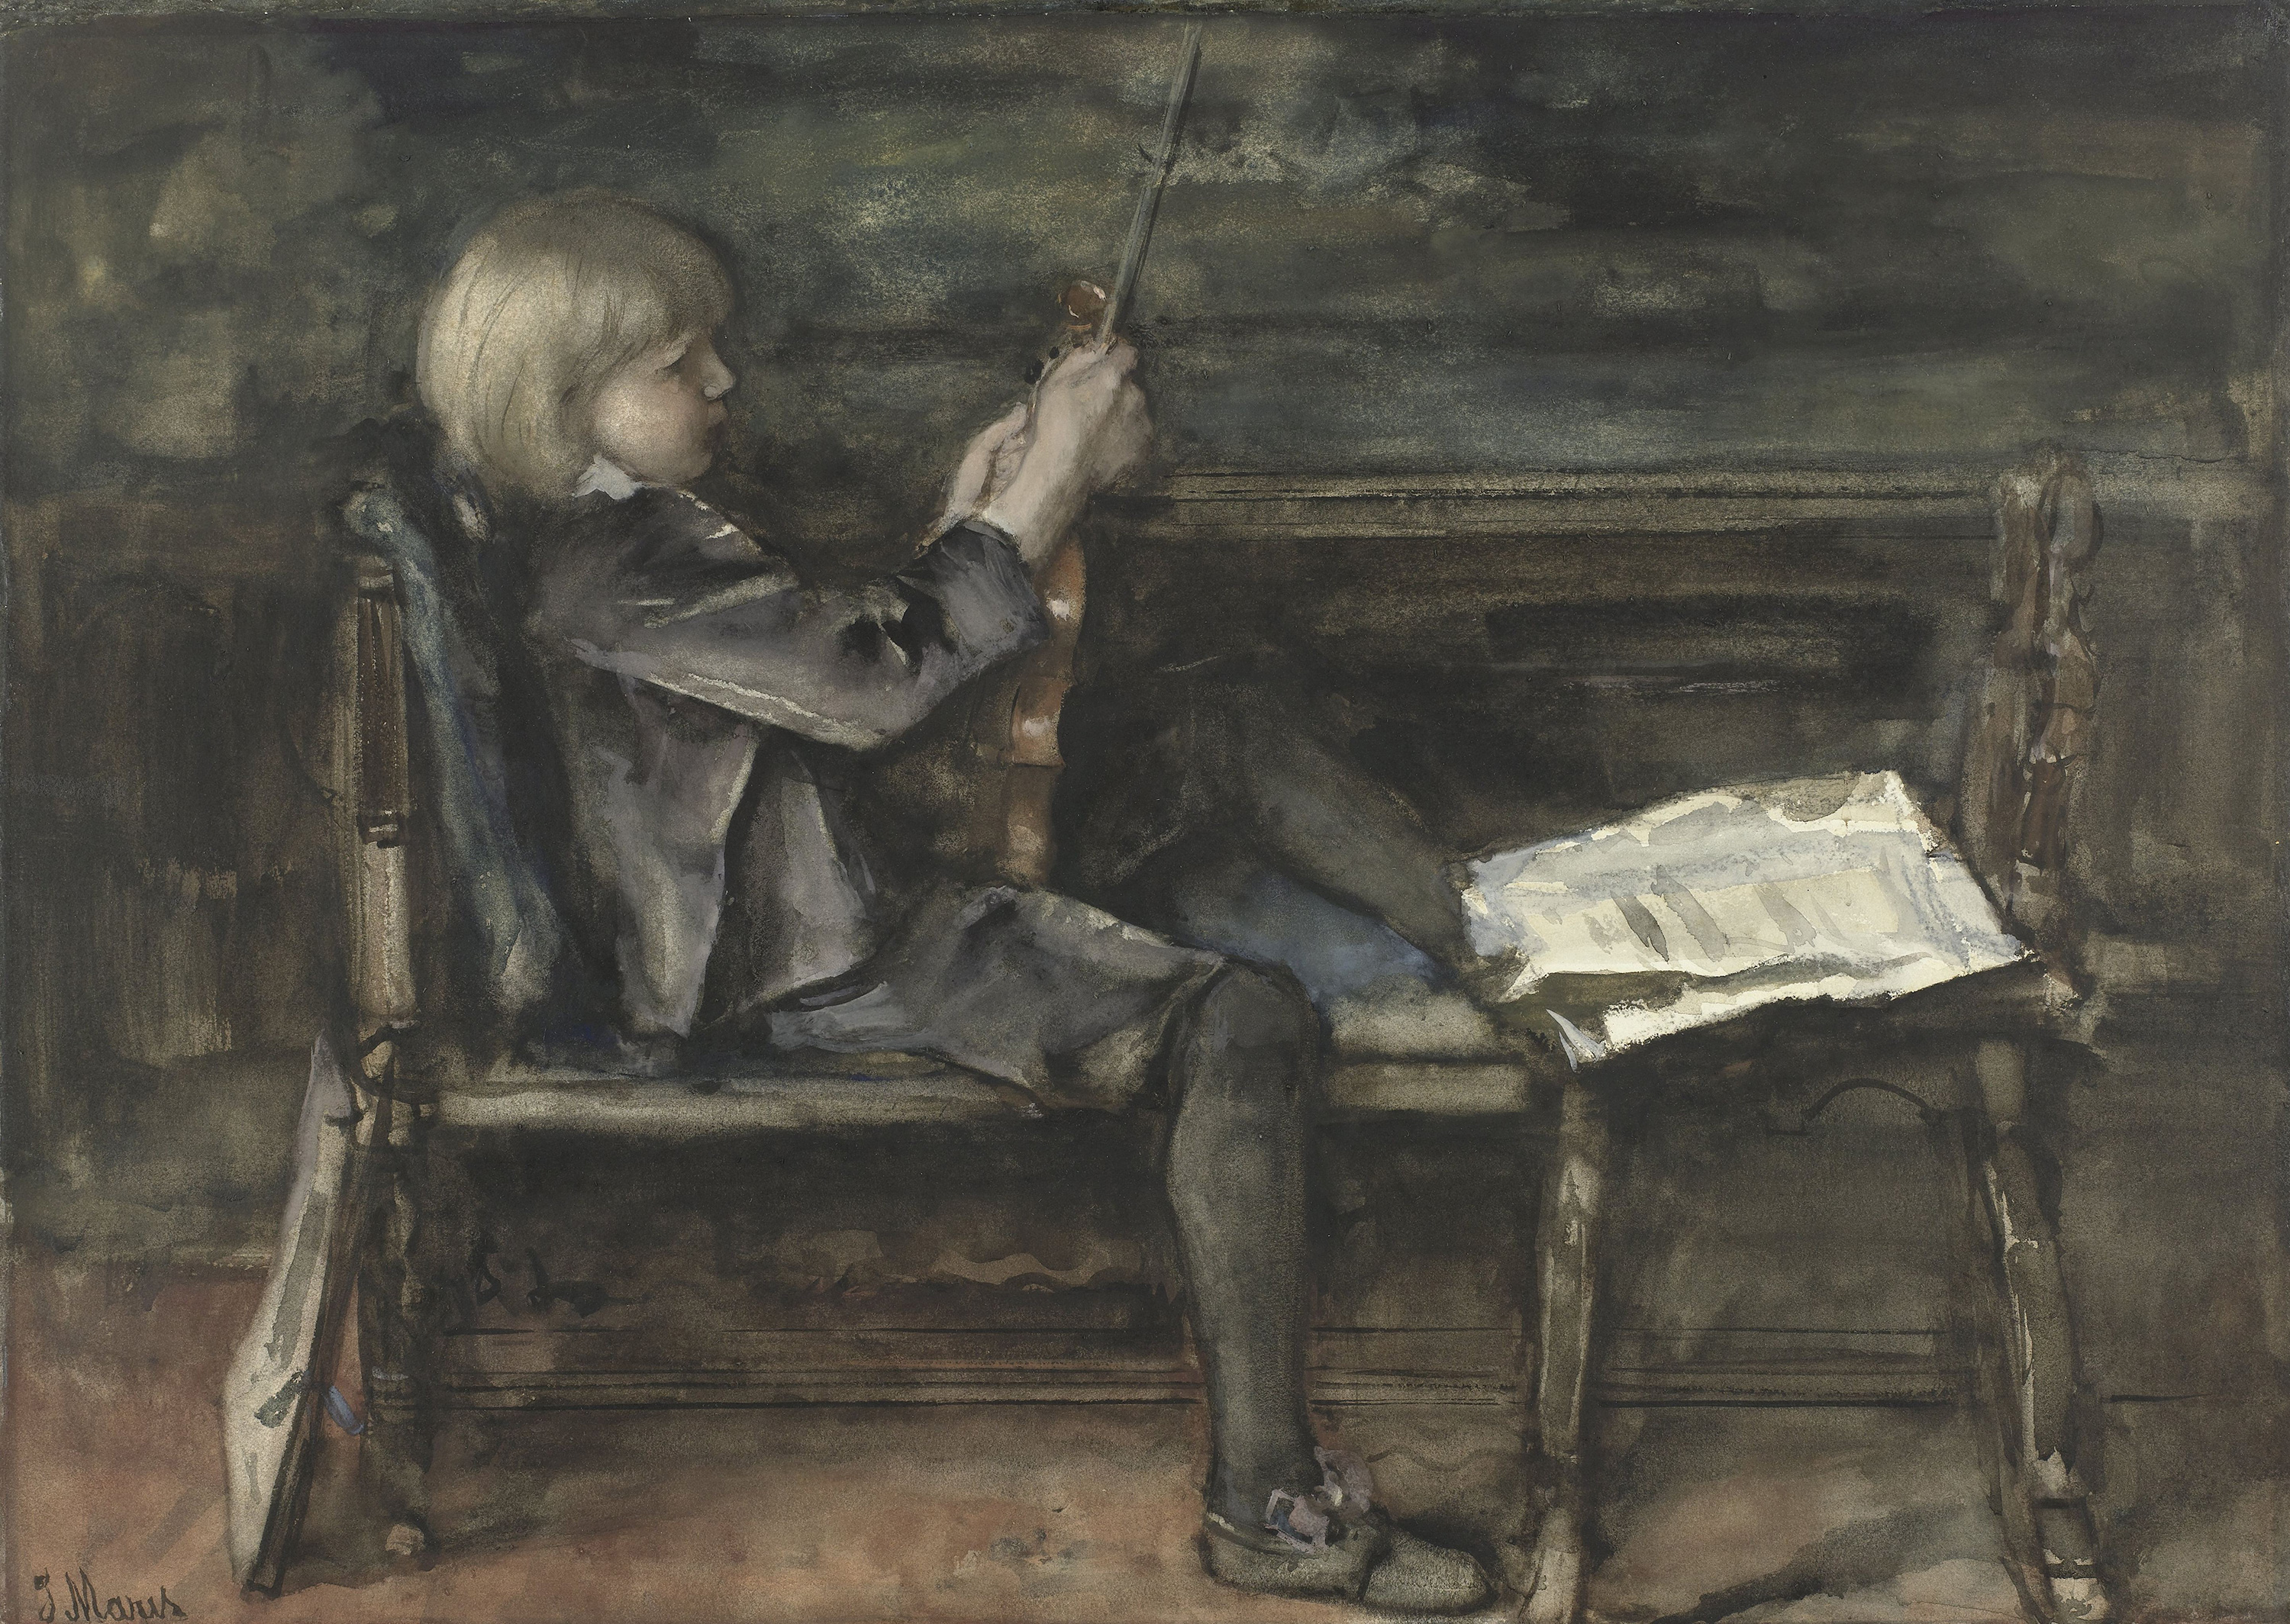 Willem Matthijs Maris with Violin, 1899 — Matthijs Maris